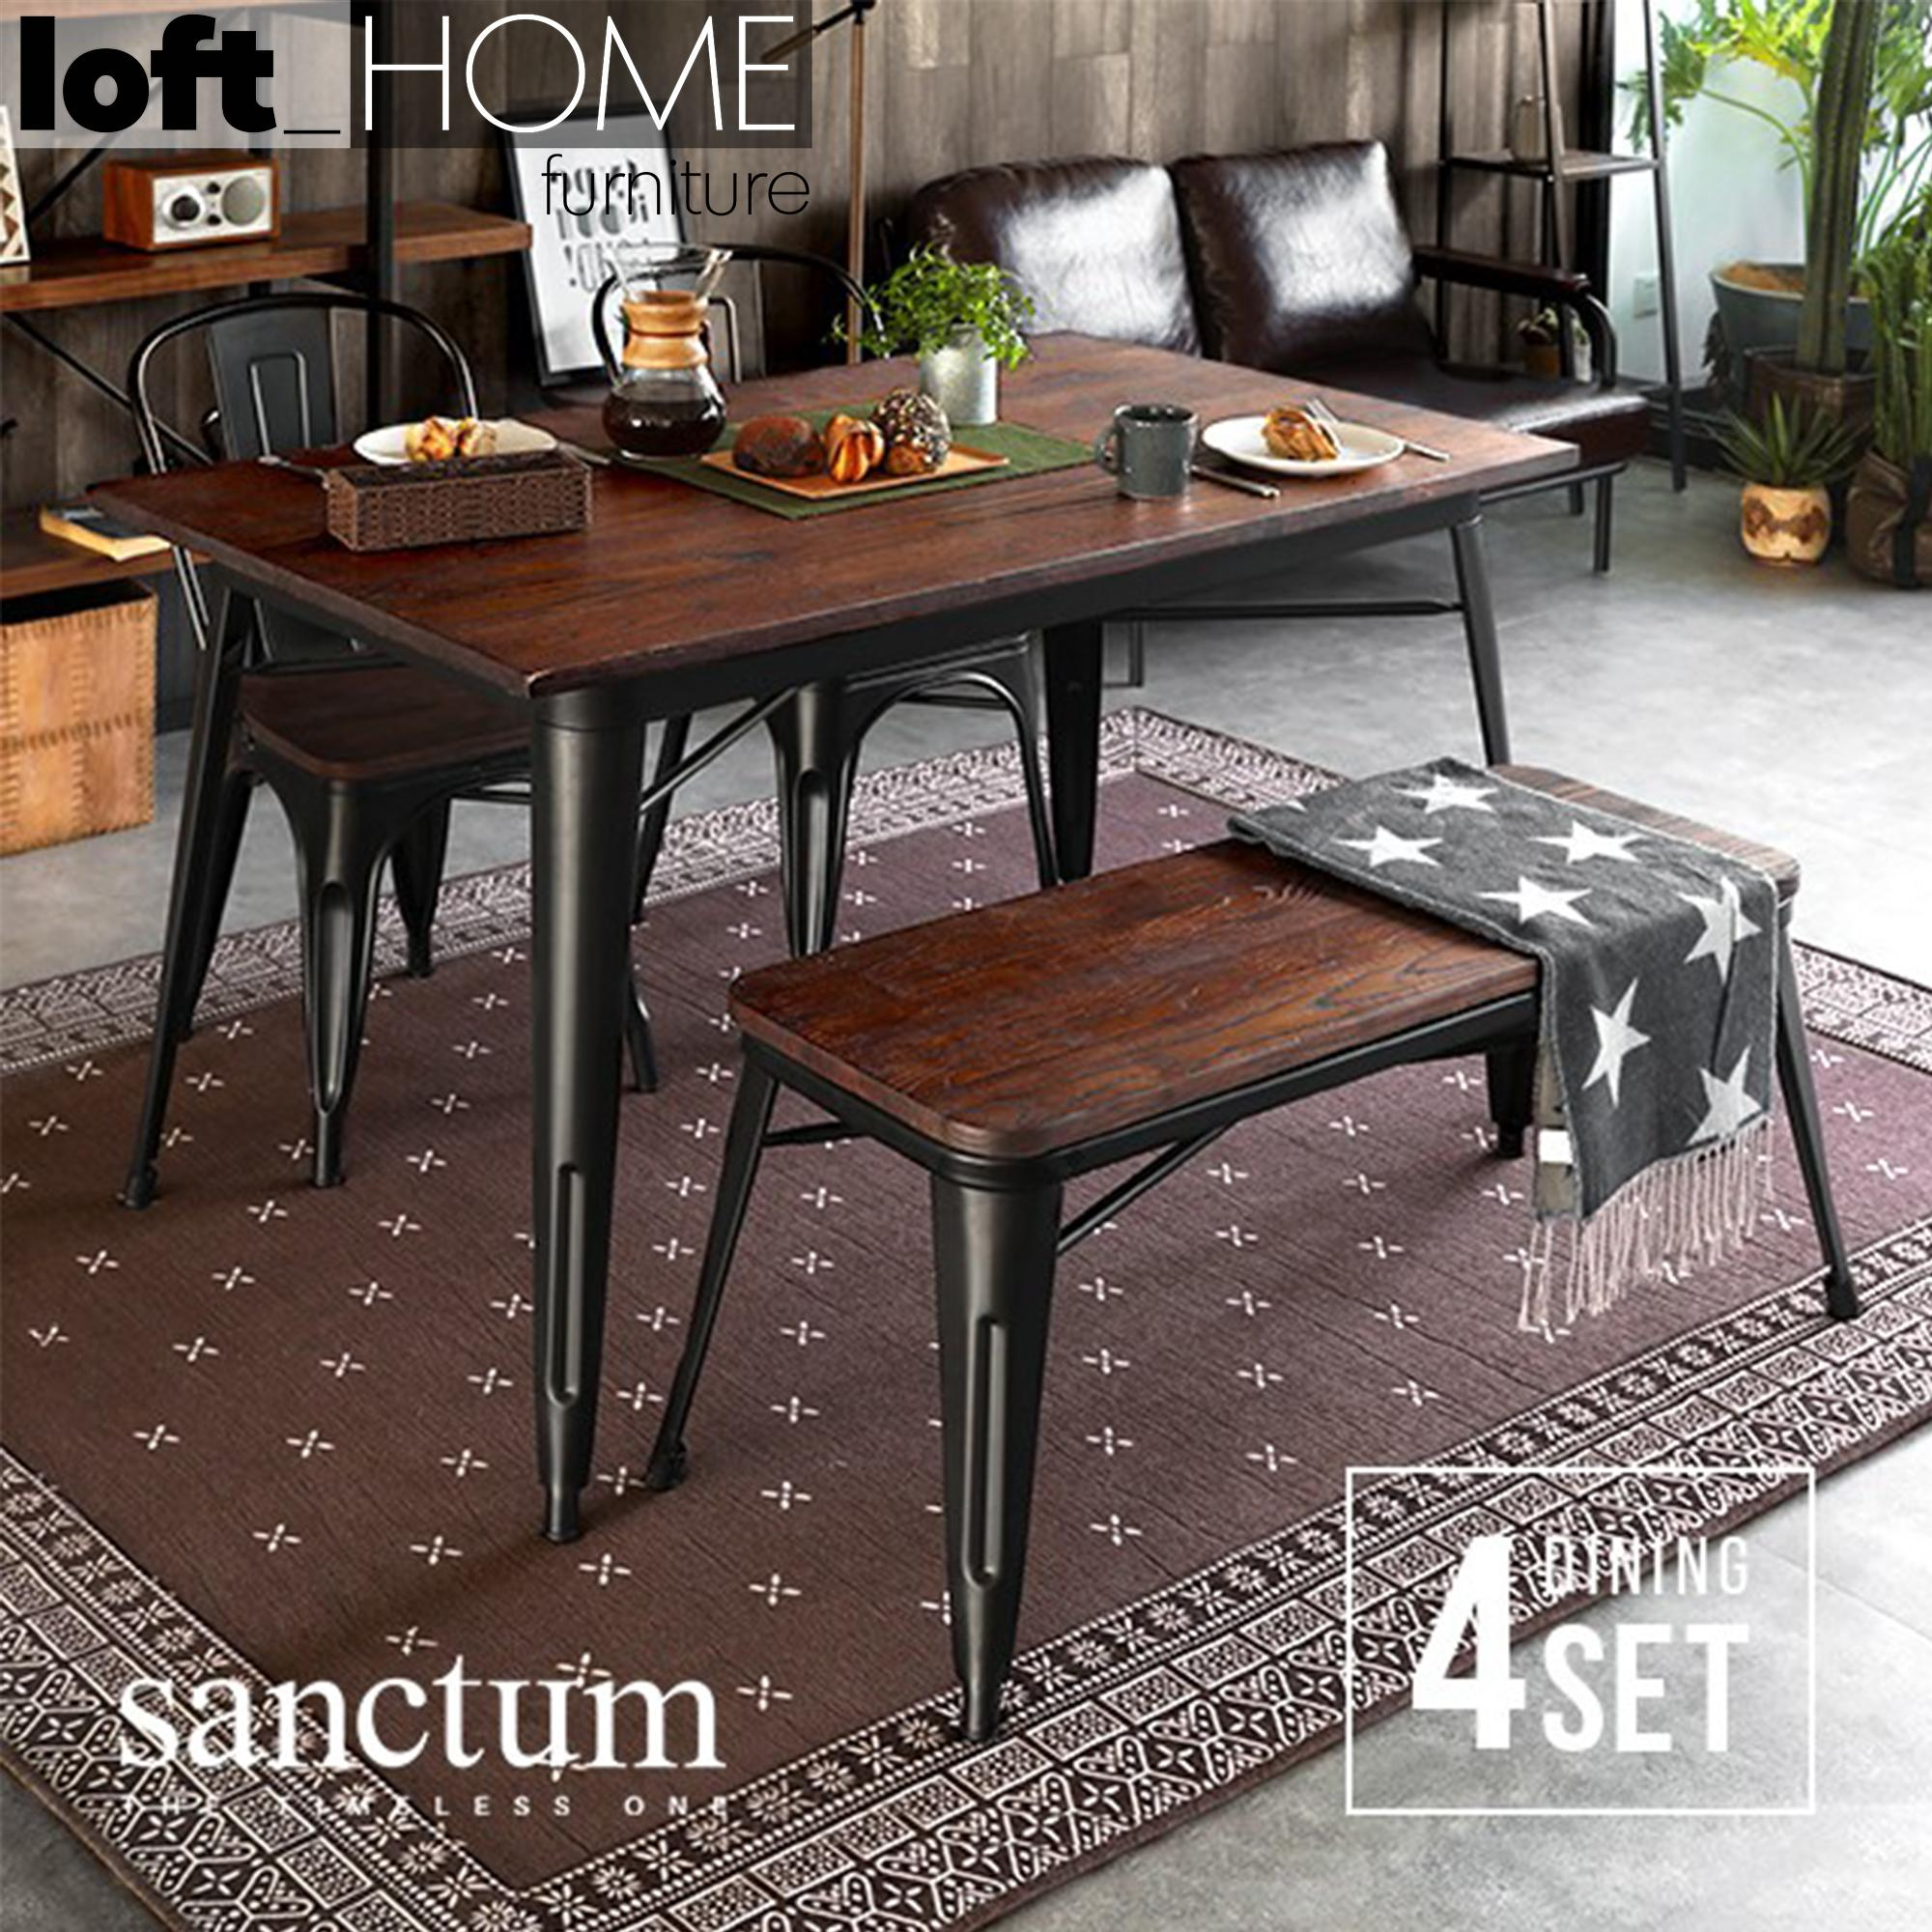 Dining Table – Sanctum 4pcs Set